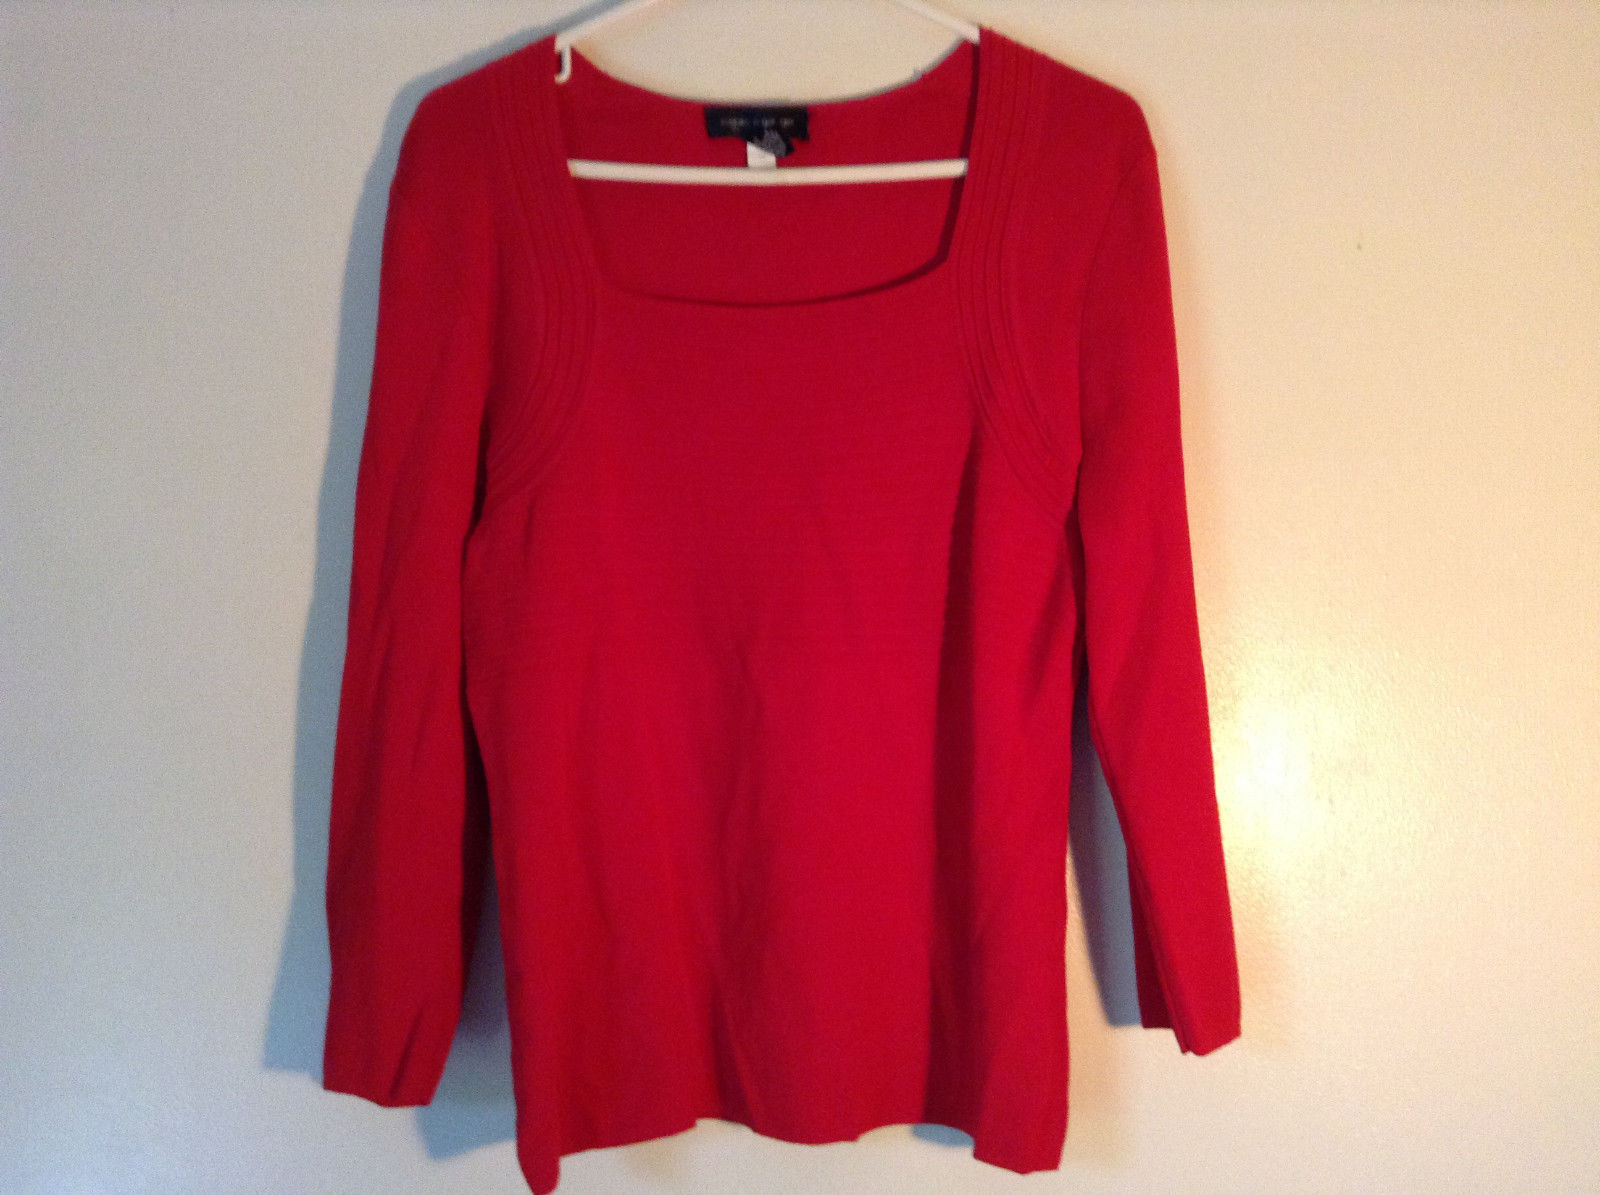 Dressy Red Long Sleeved Top by Cable and Gauge Stretchy Size Large